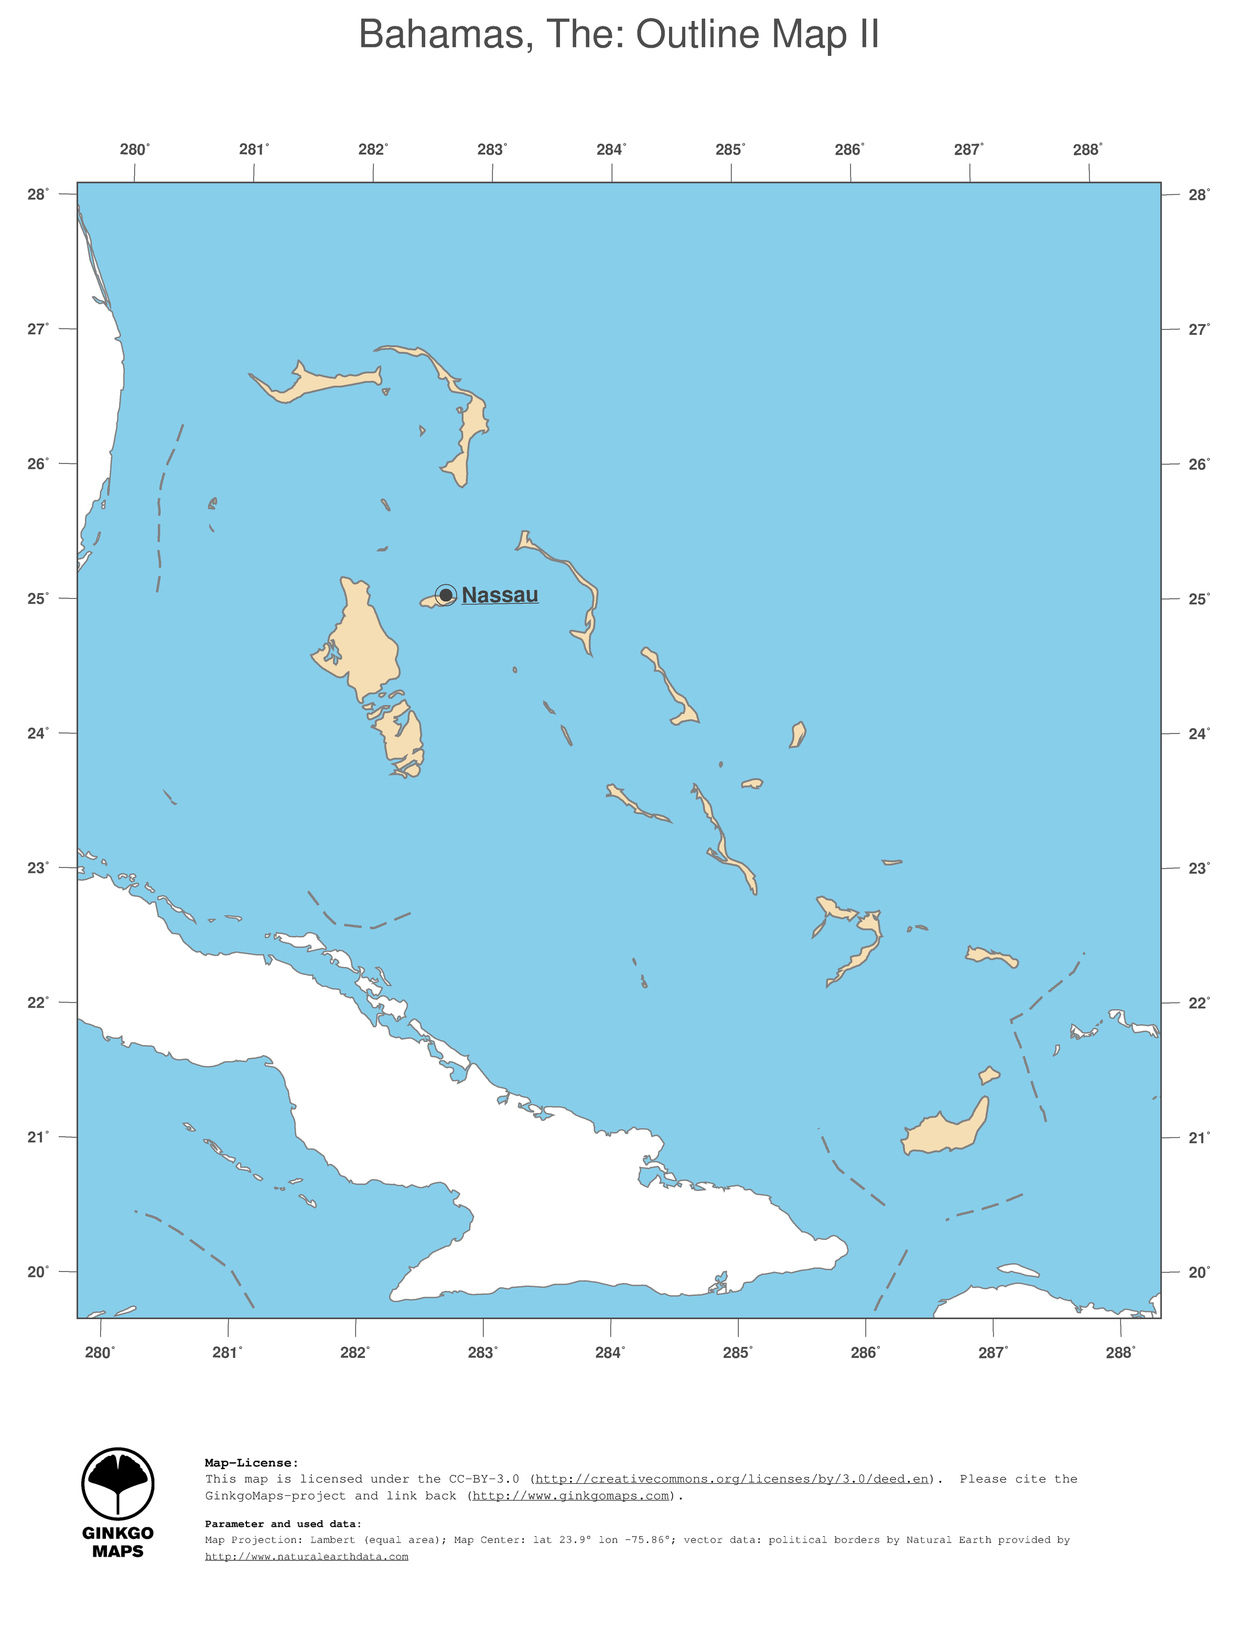 Map Bahamas The GinkgoMaps Continent South America Region - Maps of south america with capitals and countries